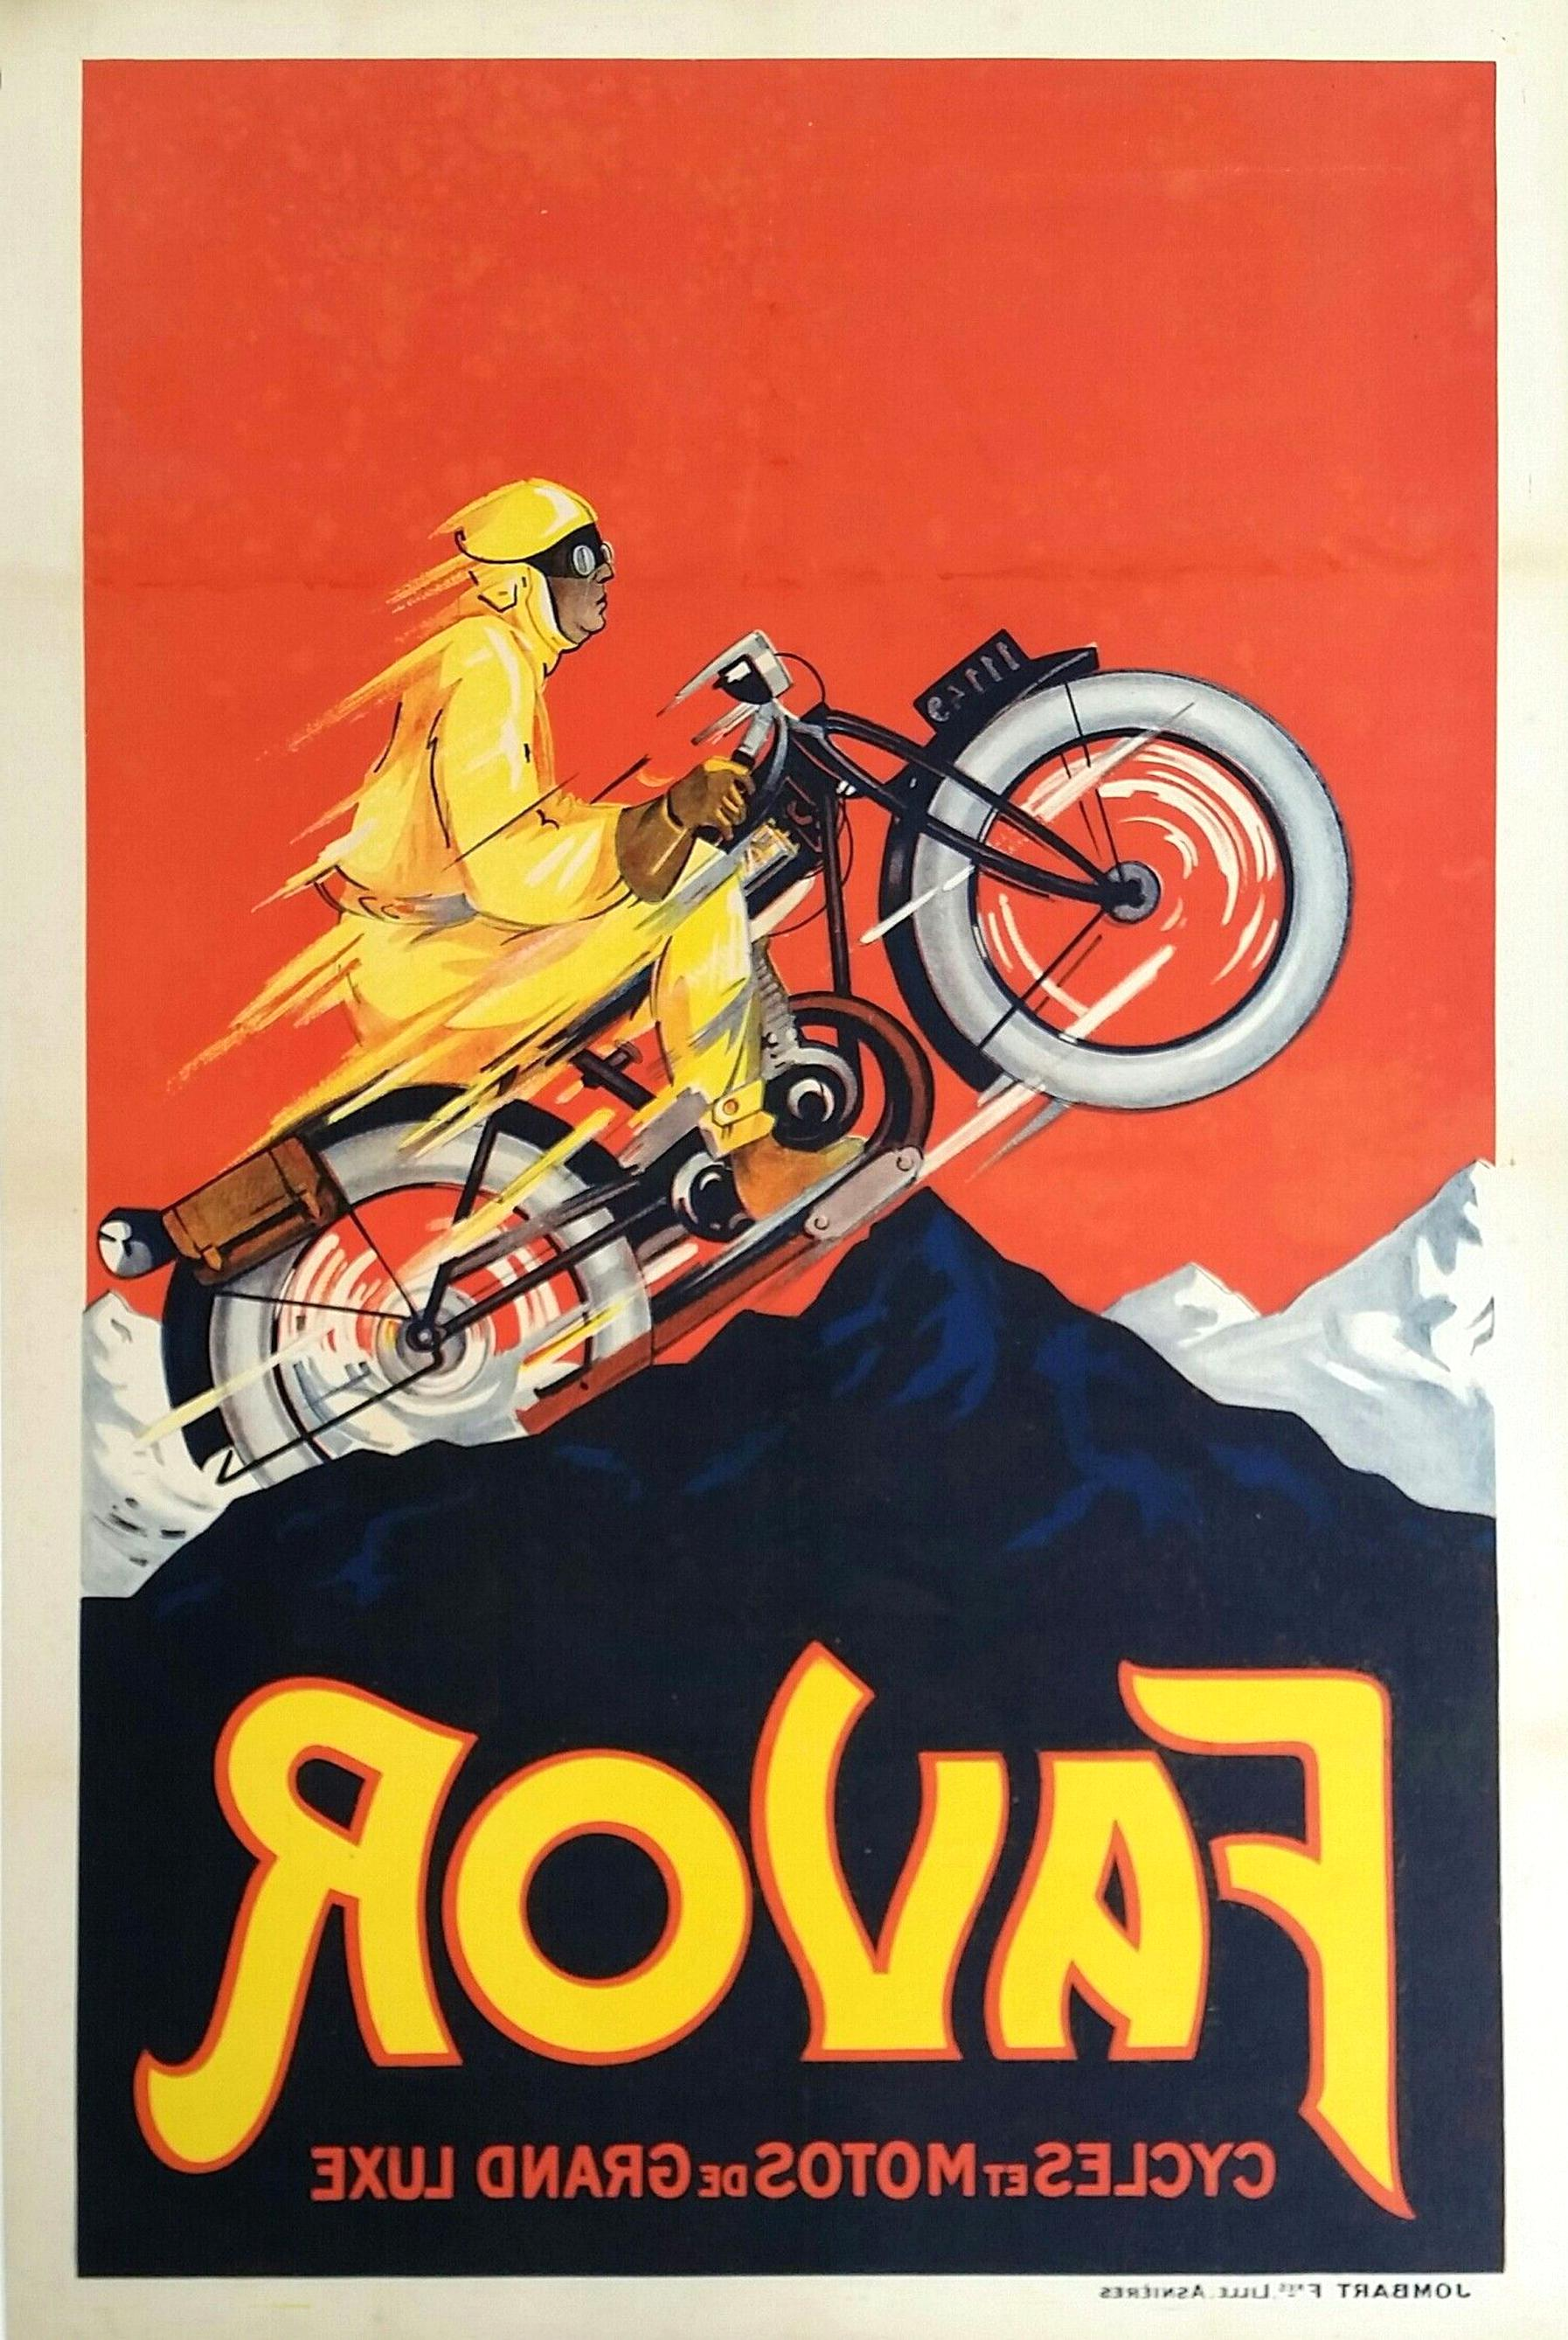 Original Vintage Motorcycle Posters For Sale Only 3 Left At 60